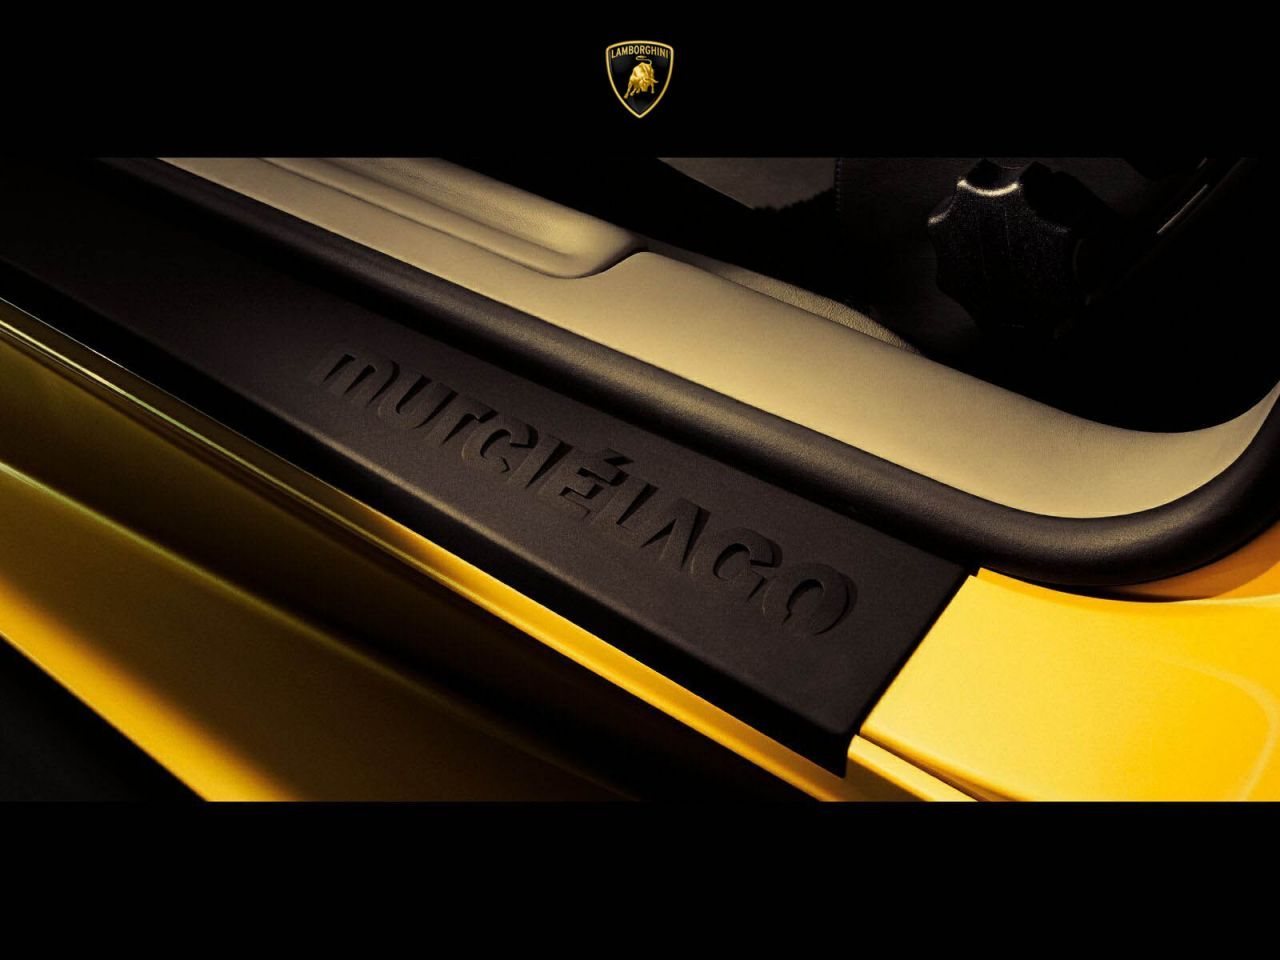 Murcielago Step Board Emblem Wallpaper 1280x960